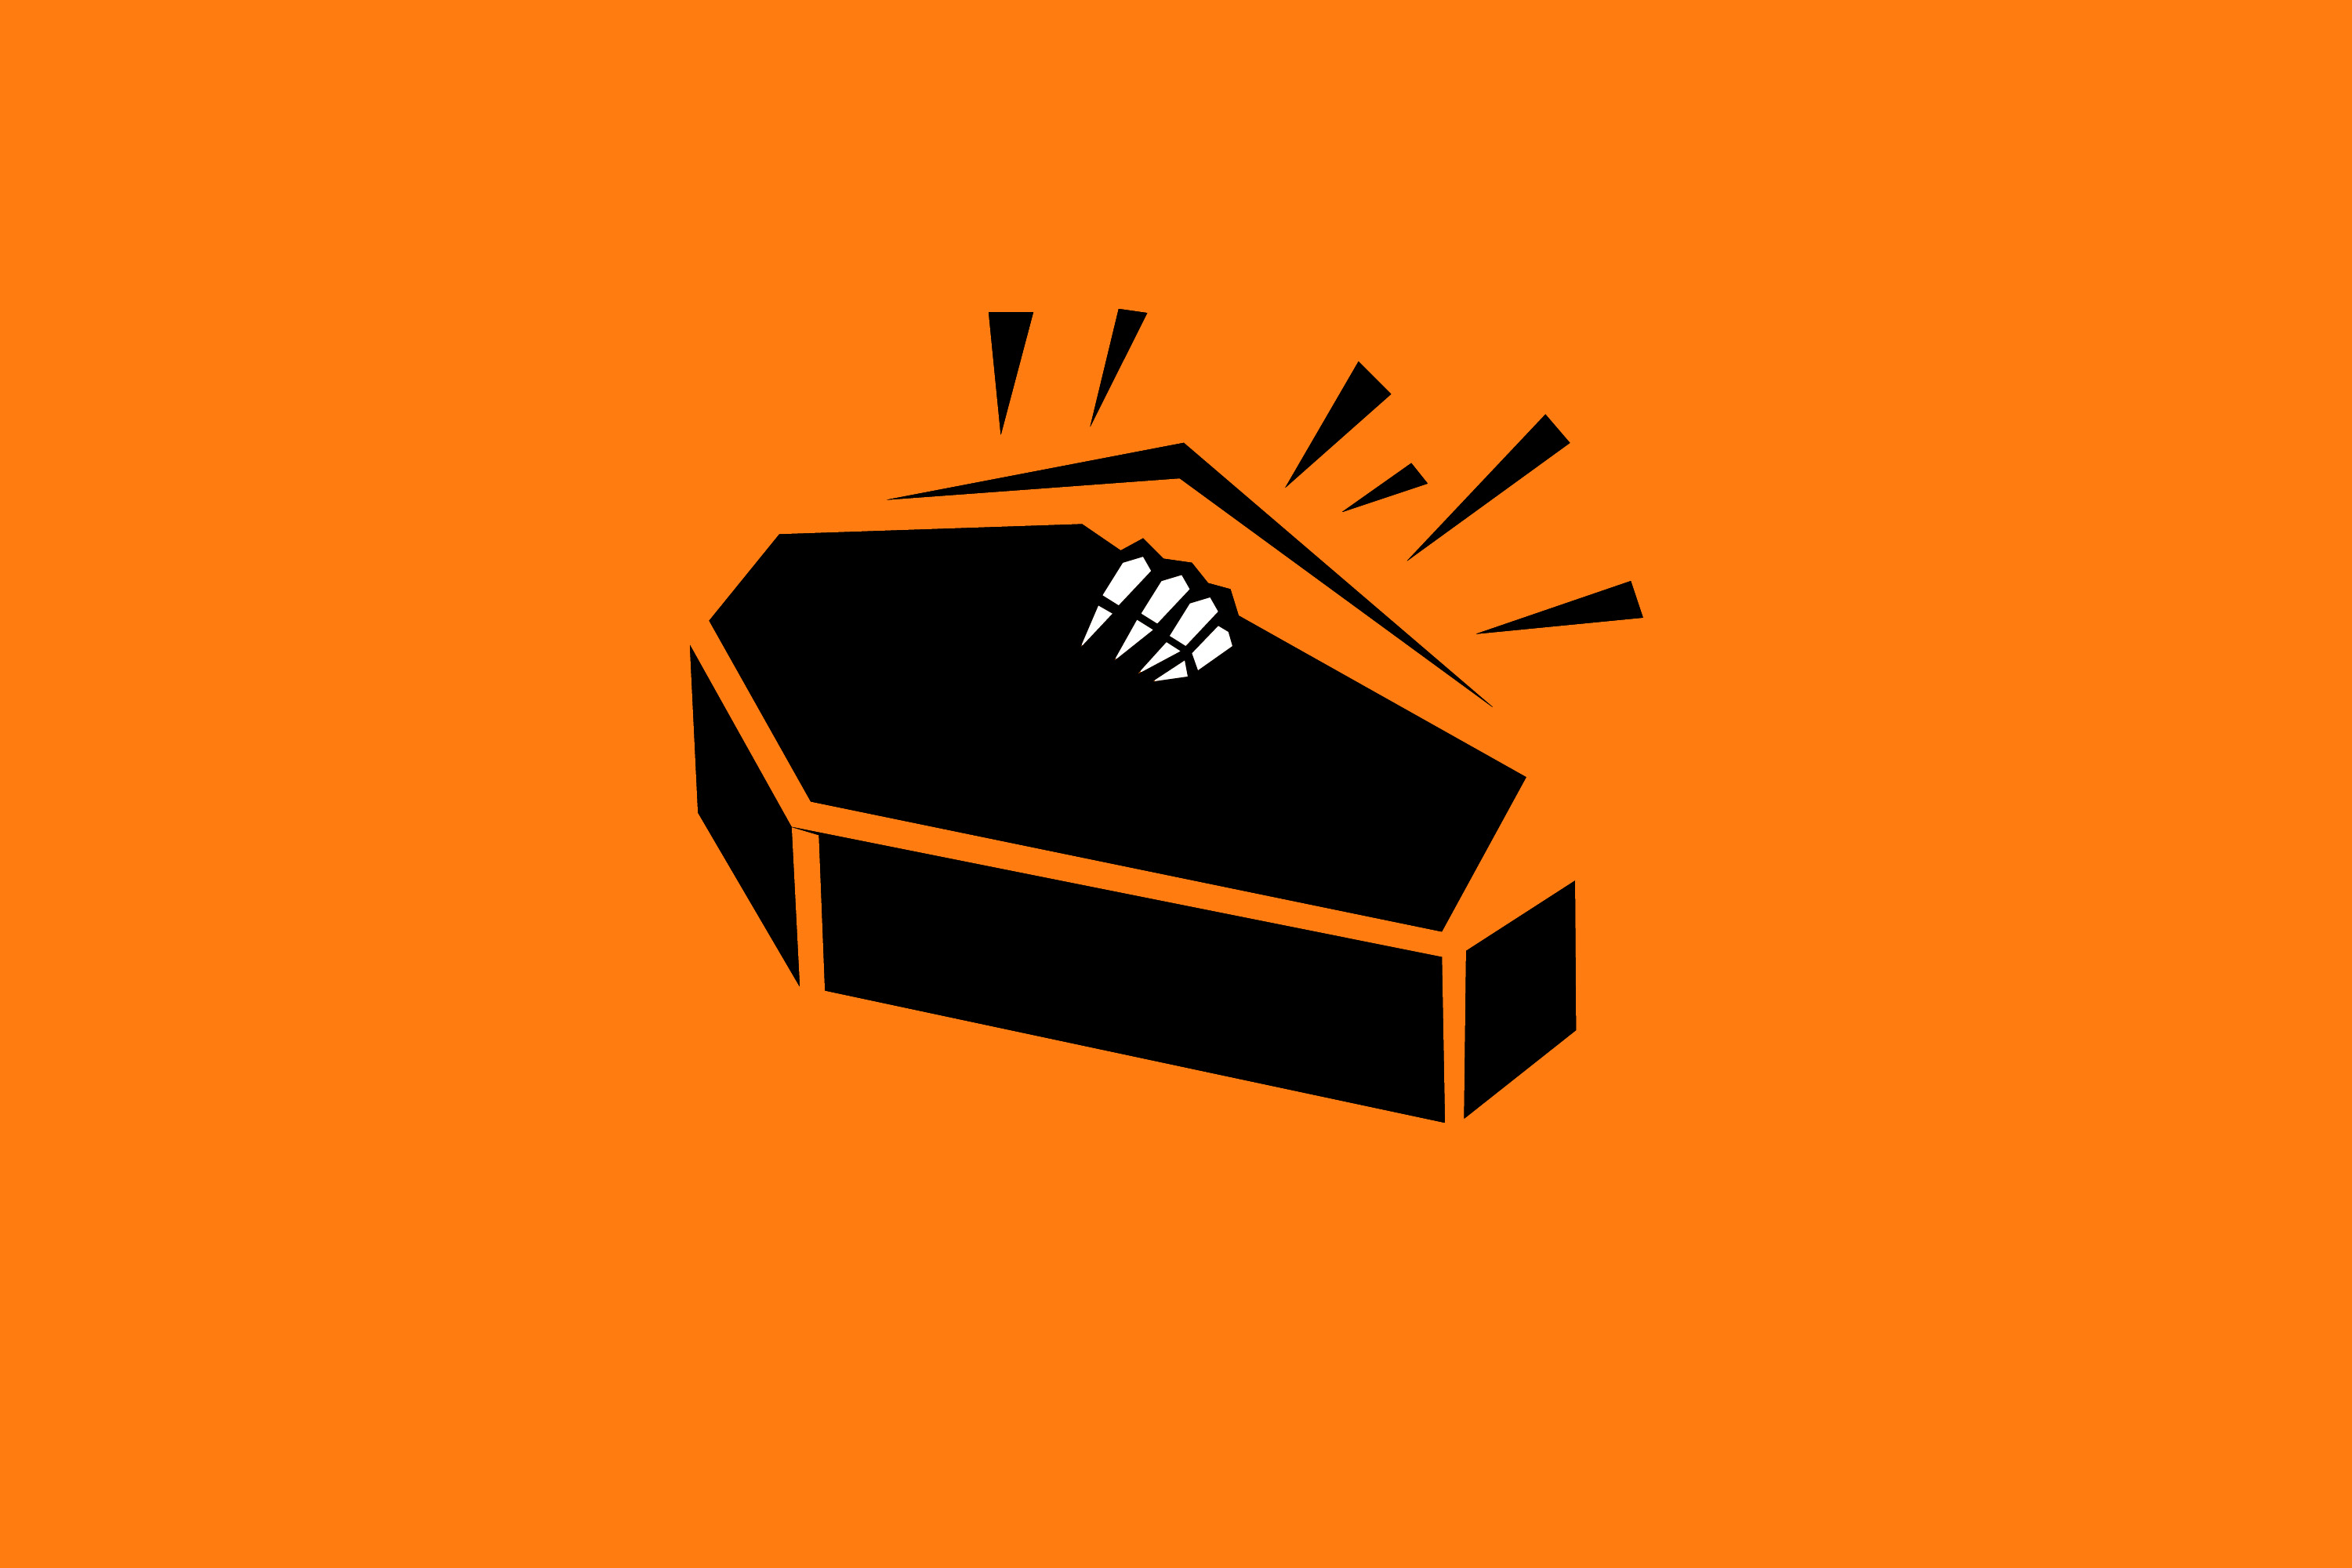 a creepy skeleton hand coming from inside a coffin on halloween orange background